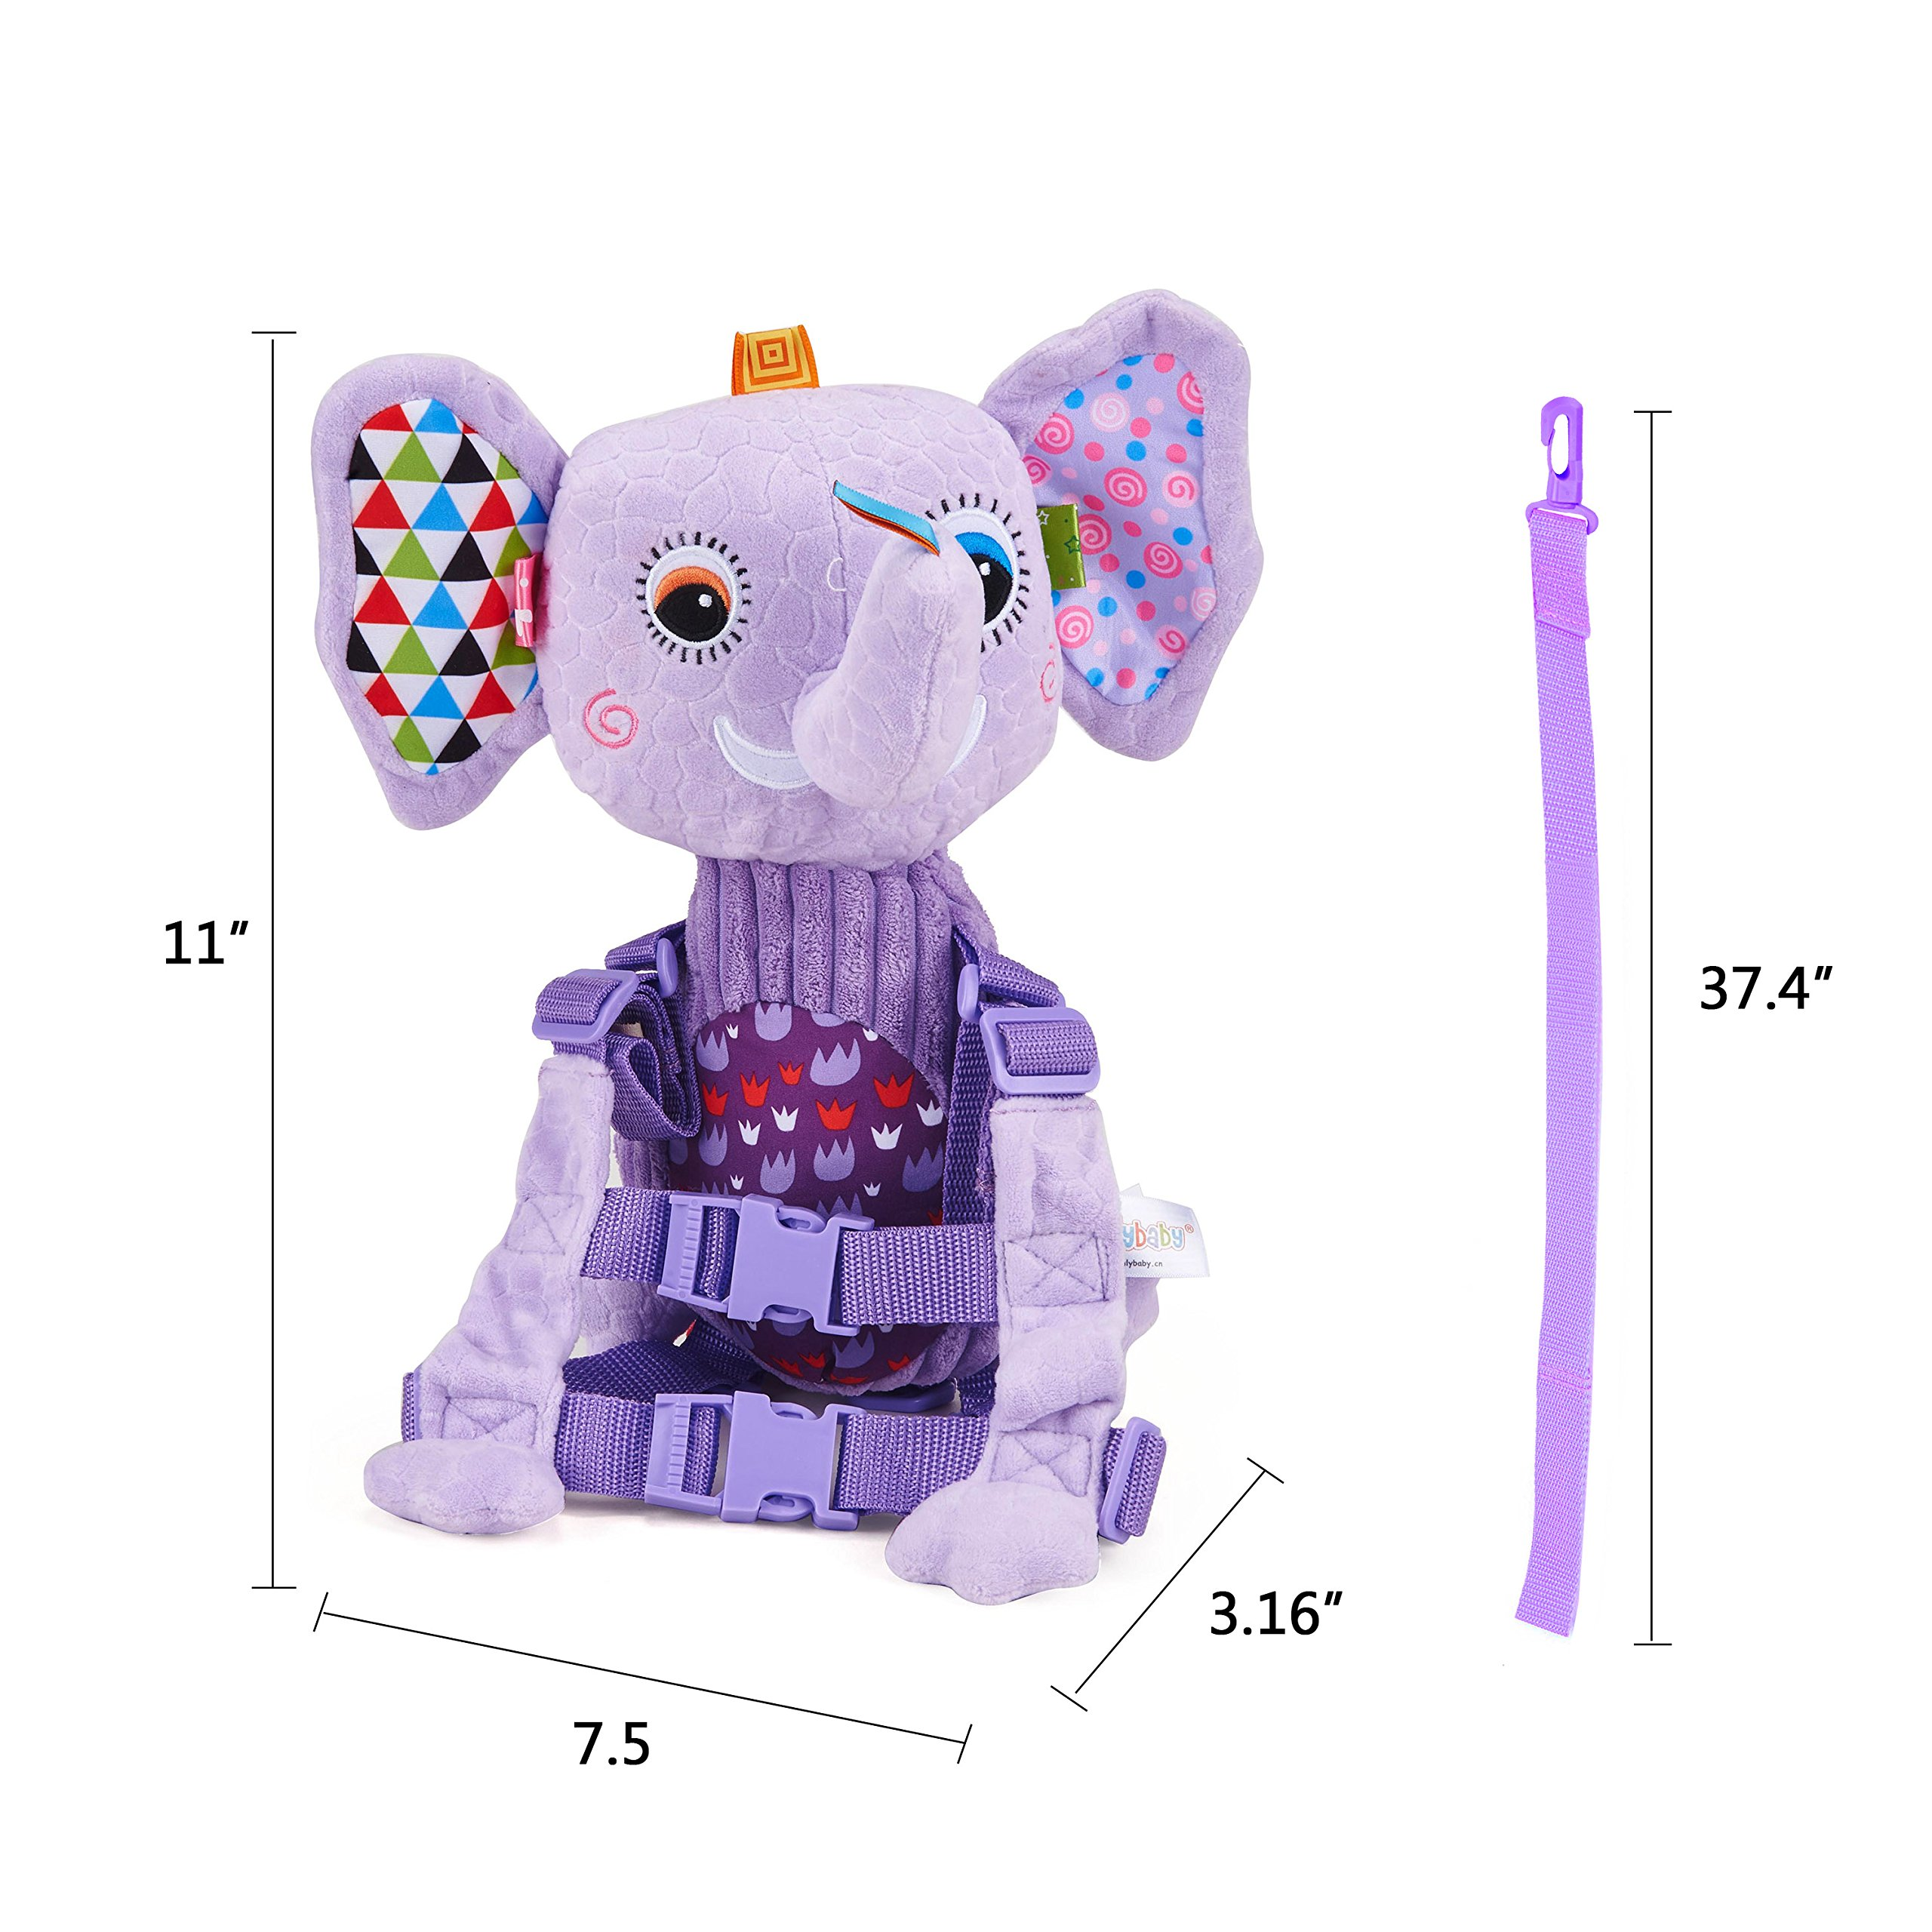 Mufly Toddler Safety Harness Backpack Children's Walking Leash Strap and Name Label -Multicolor (purple) by Mufly (Image #7)